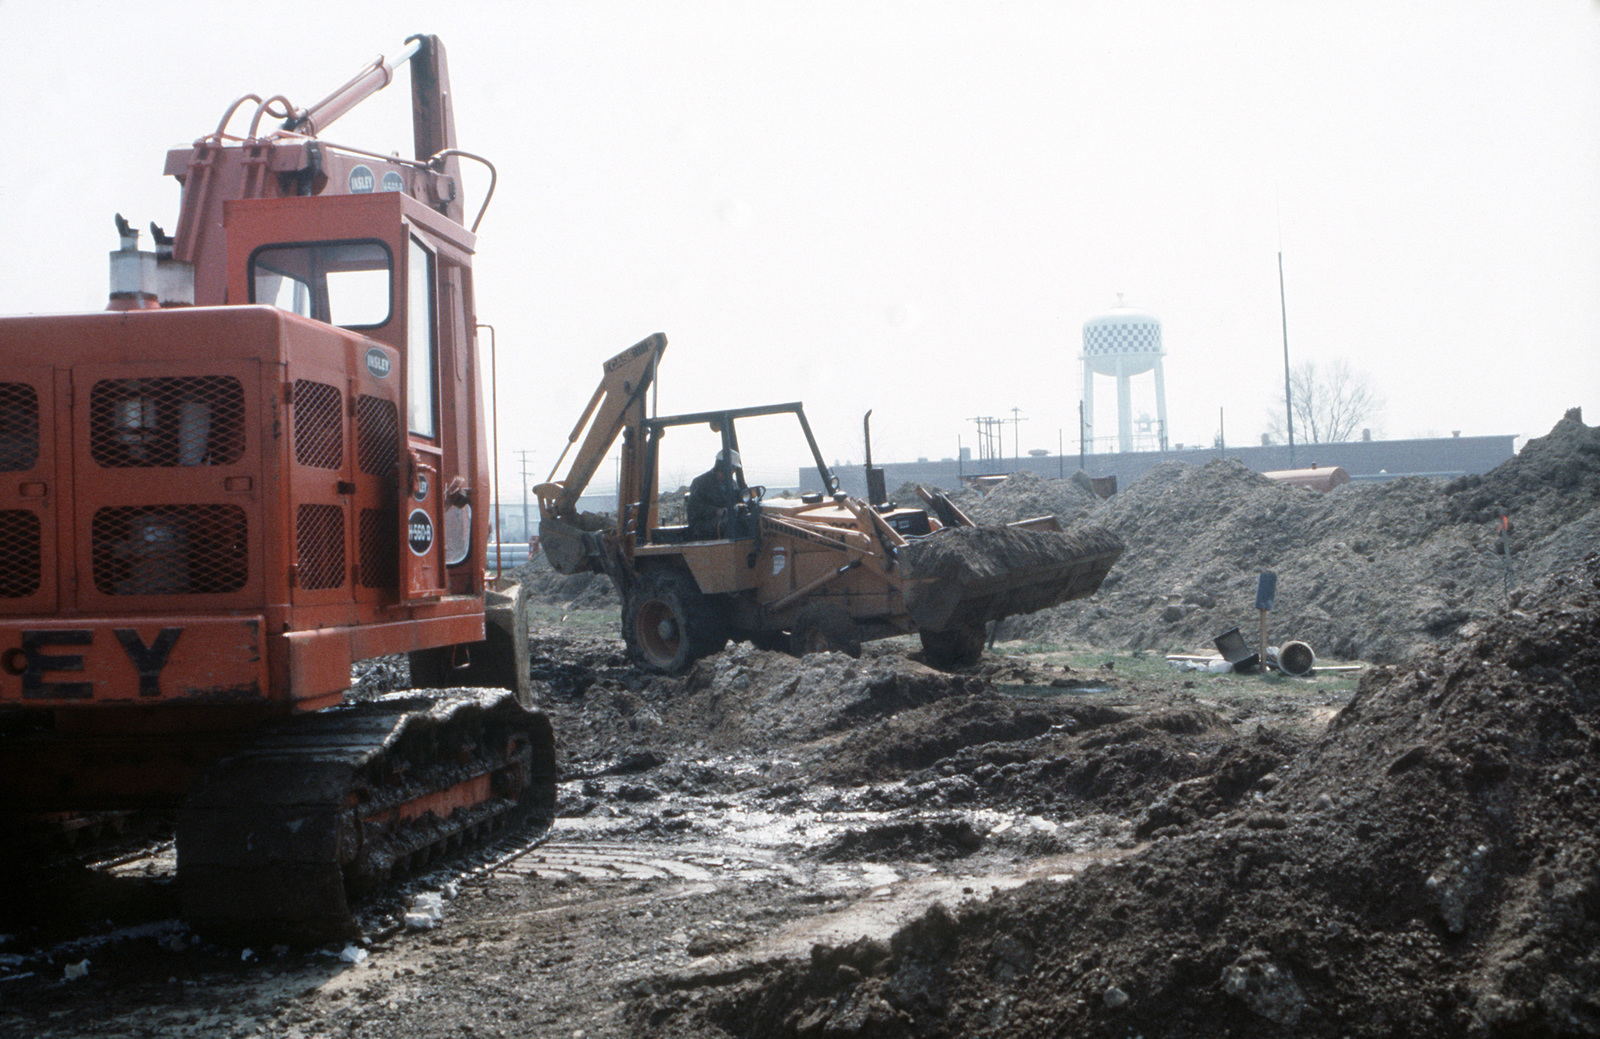 Construction equipment is used to clear the site for the new personnel center